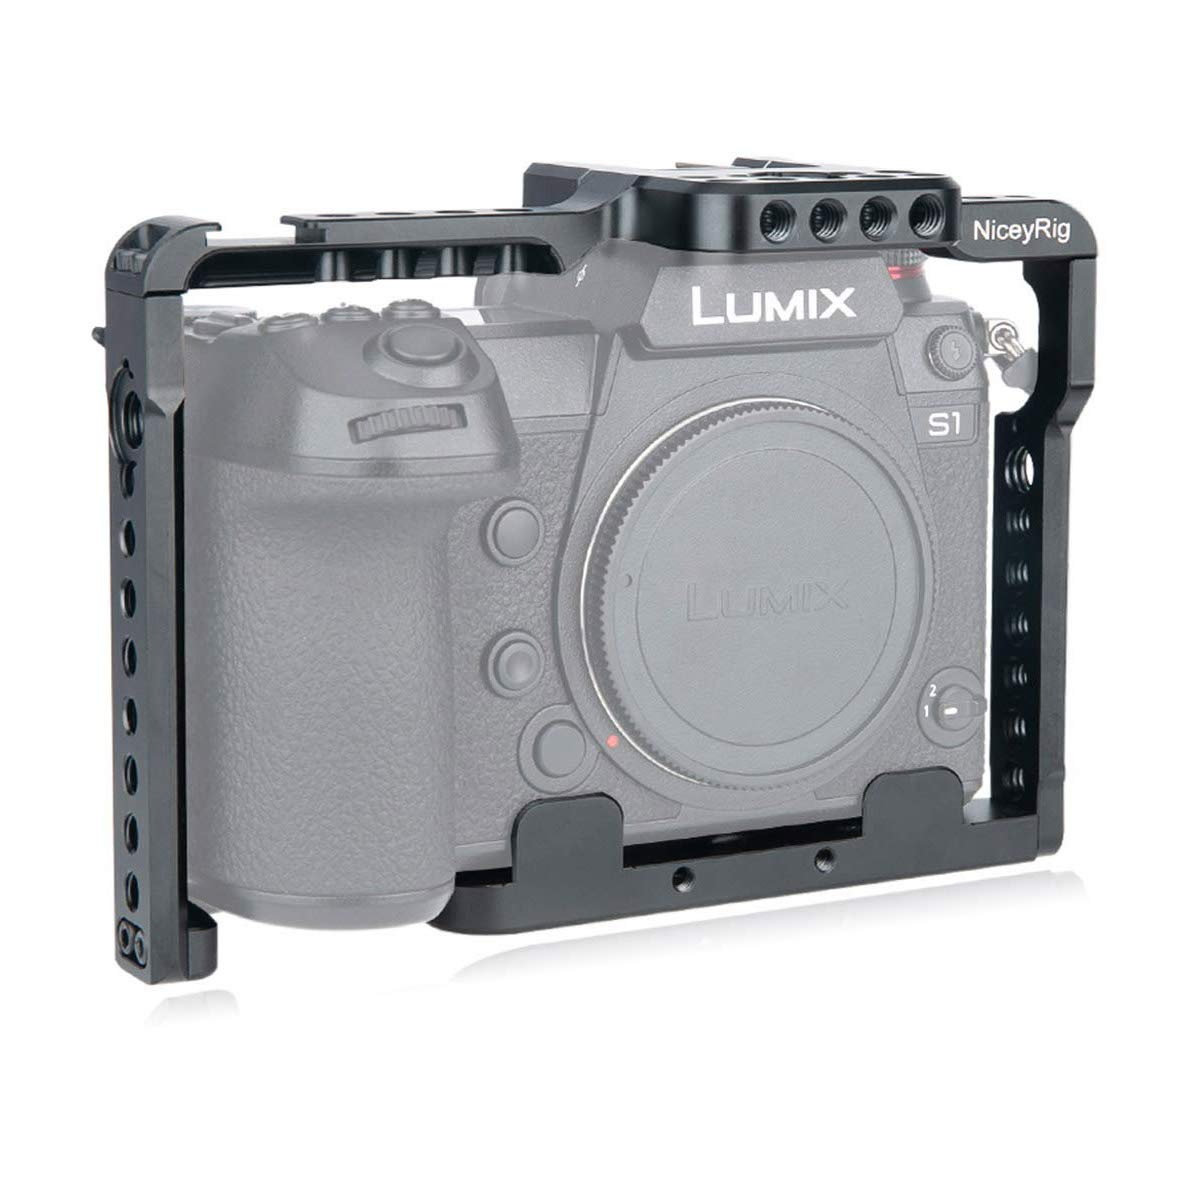 NICEYRIG S1 S1r Panasonic Lumix Camera Cage, Quick Release with NATO Rails & ARRI Locating Holes- 316 by NICEYRIG